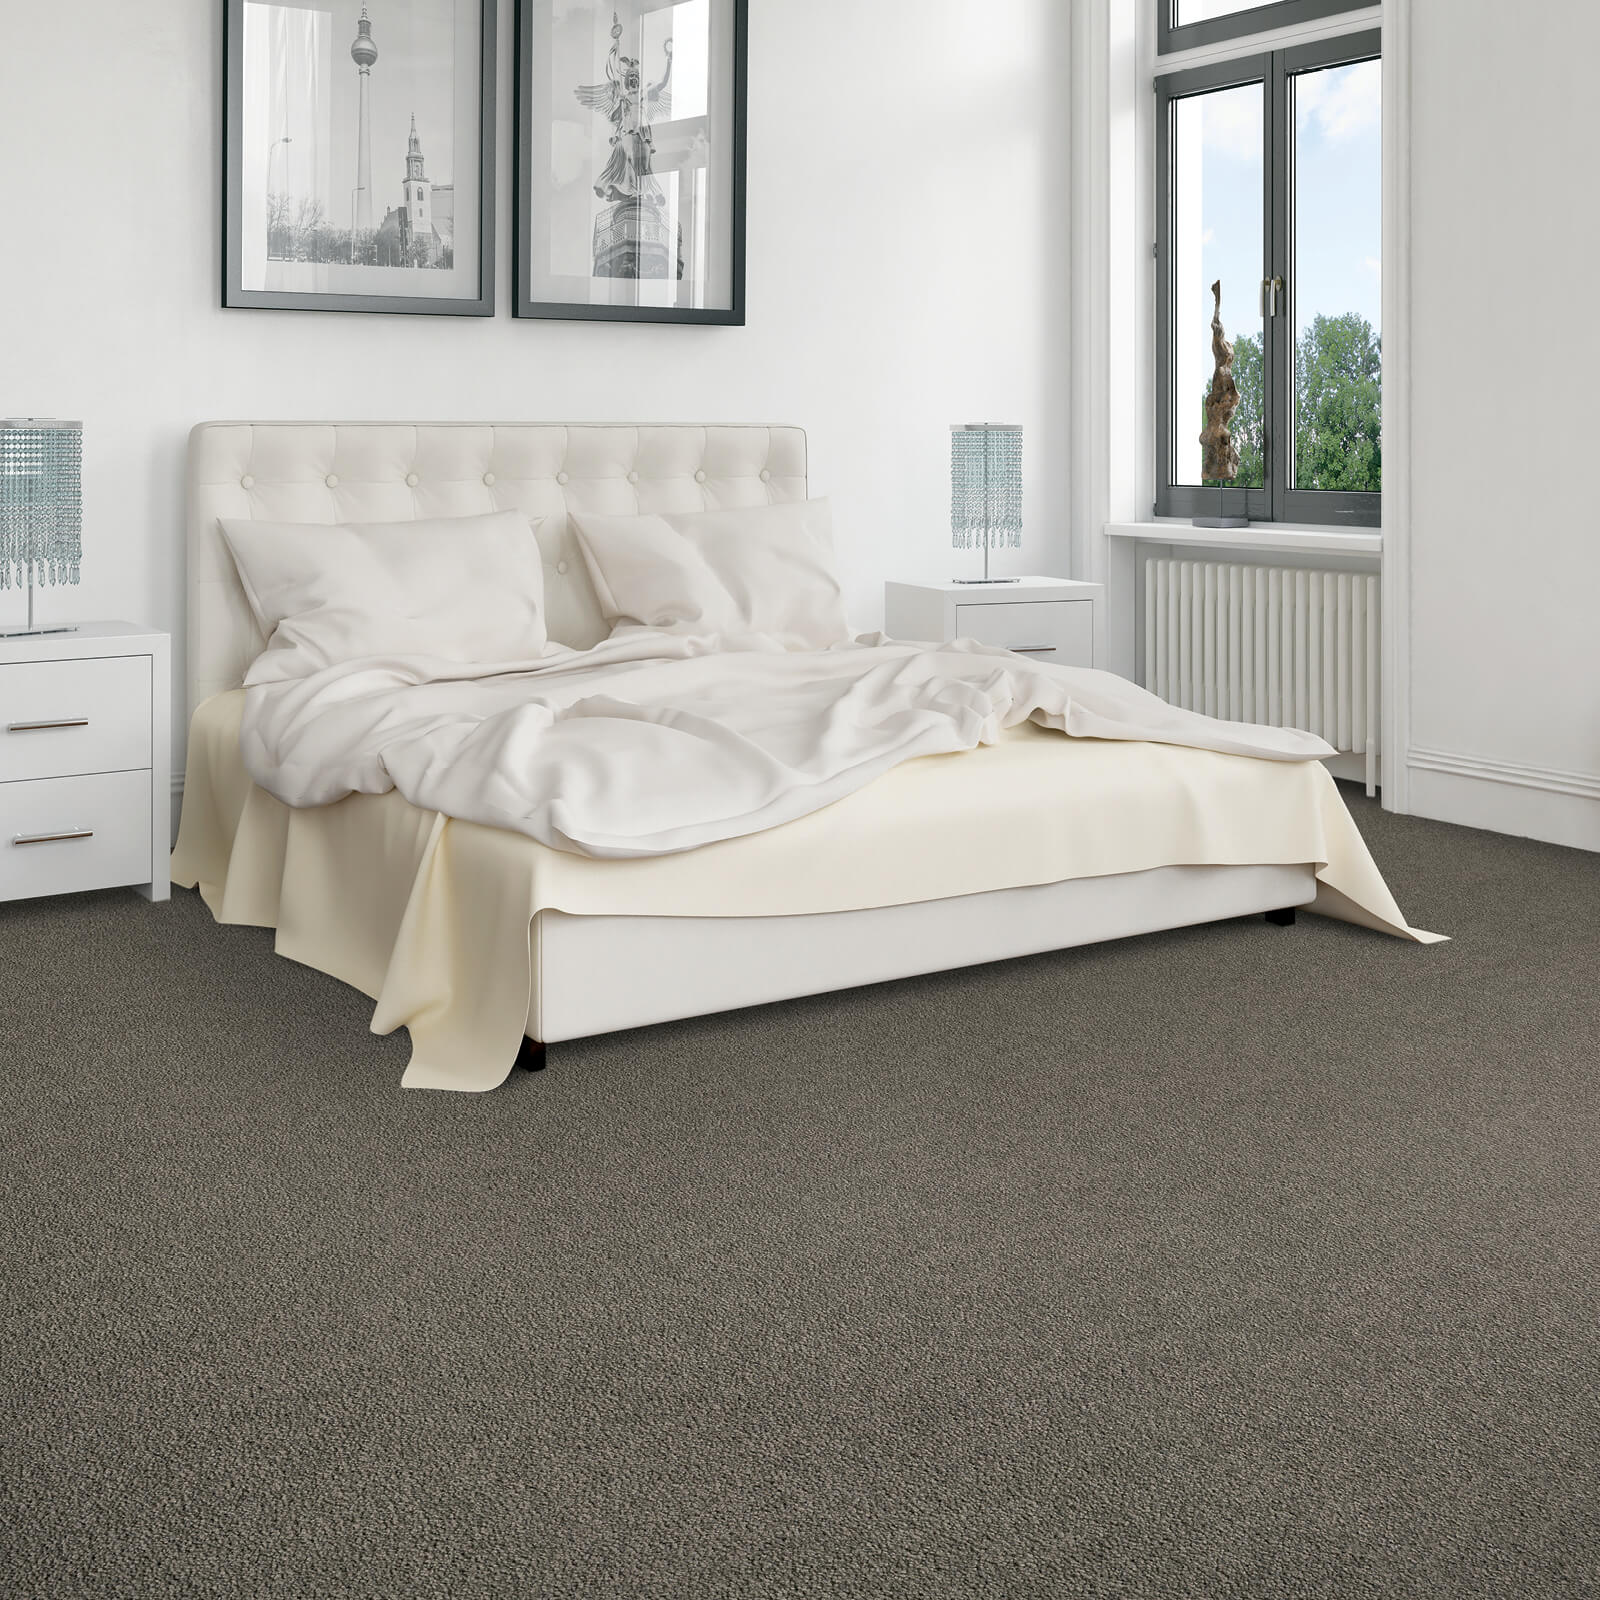 Carpet in bedroom | Hughes Floor Coverings Inc